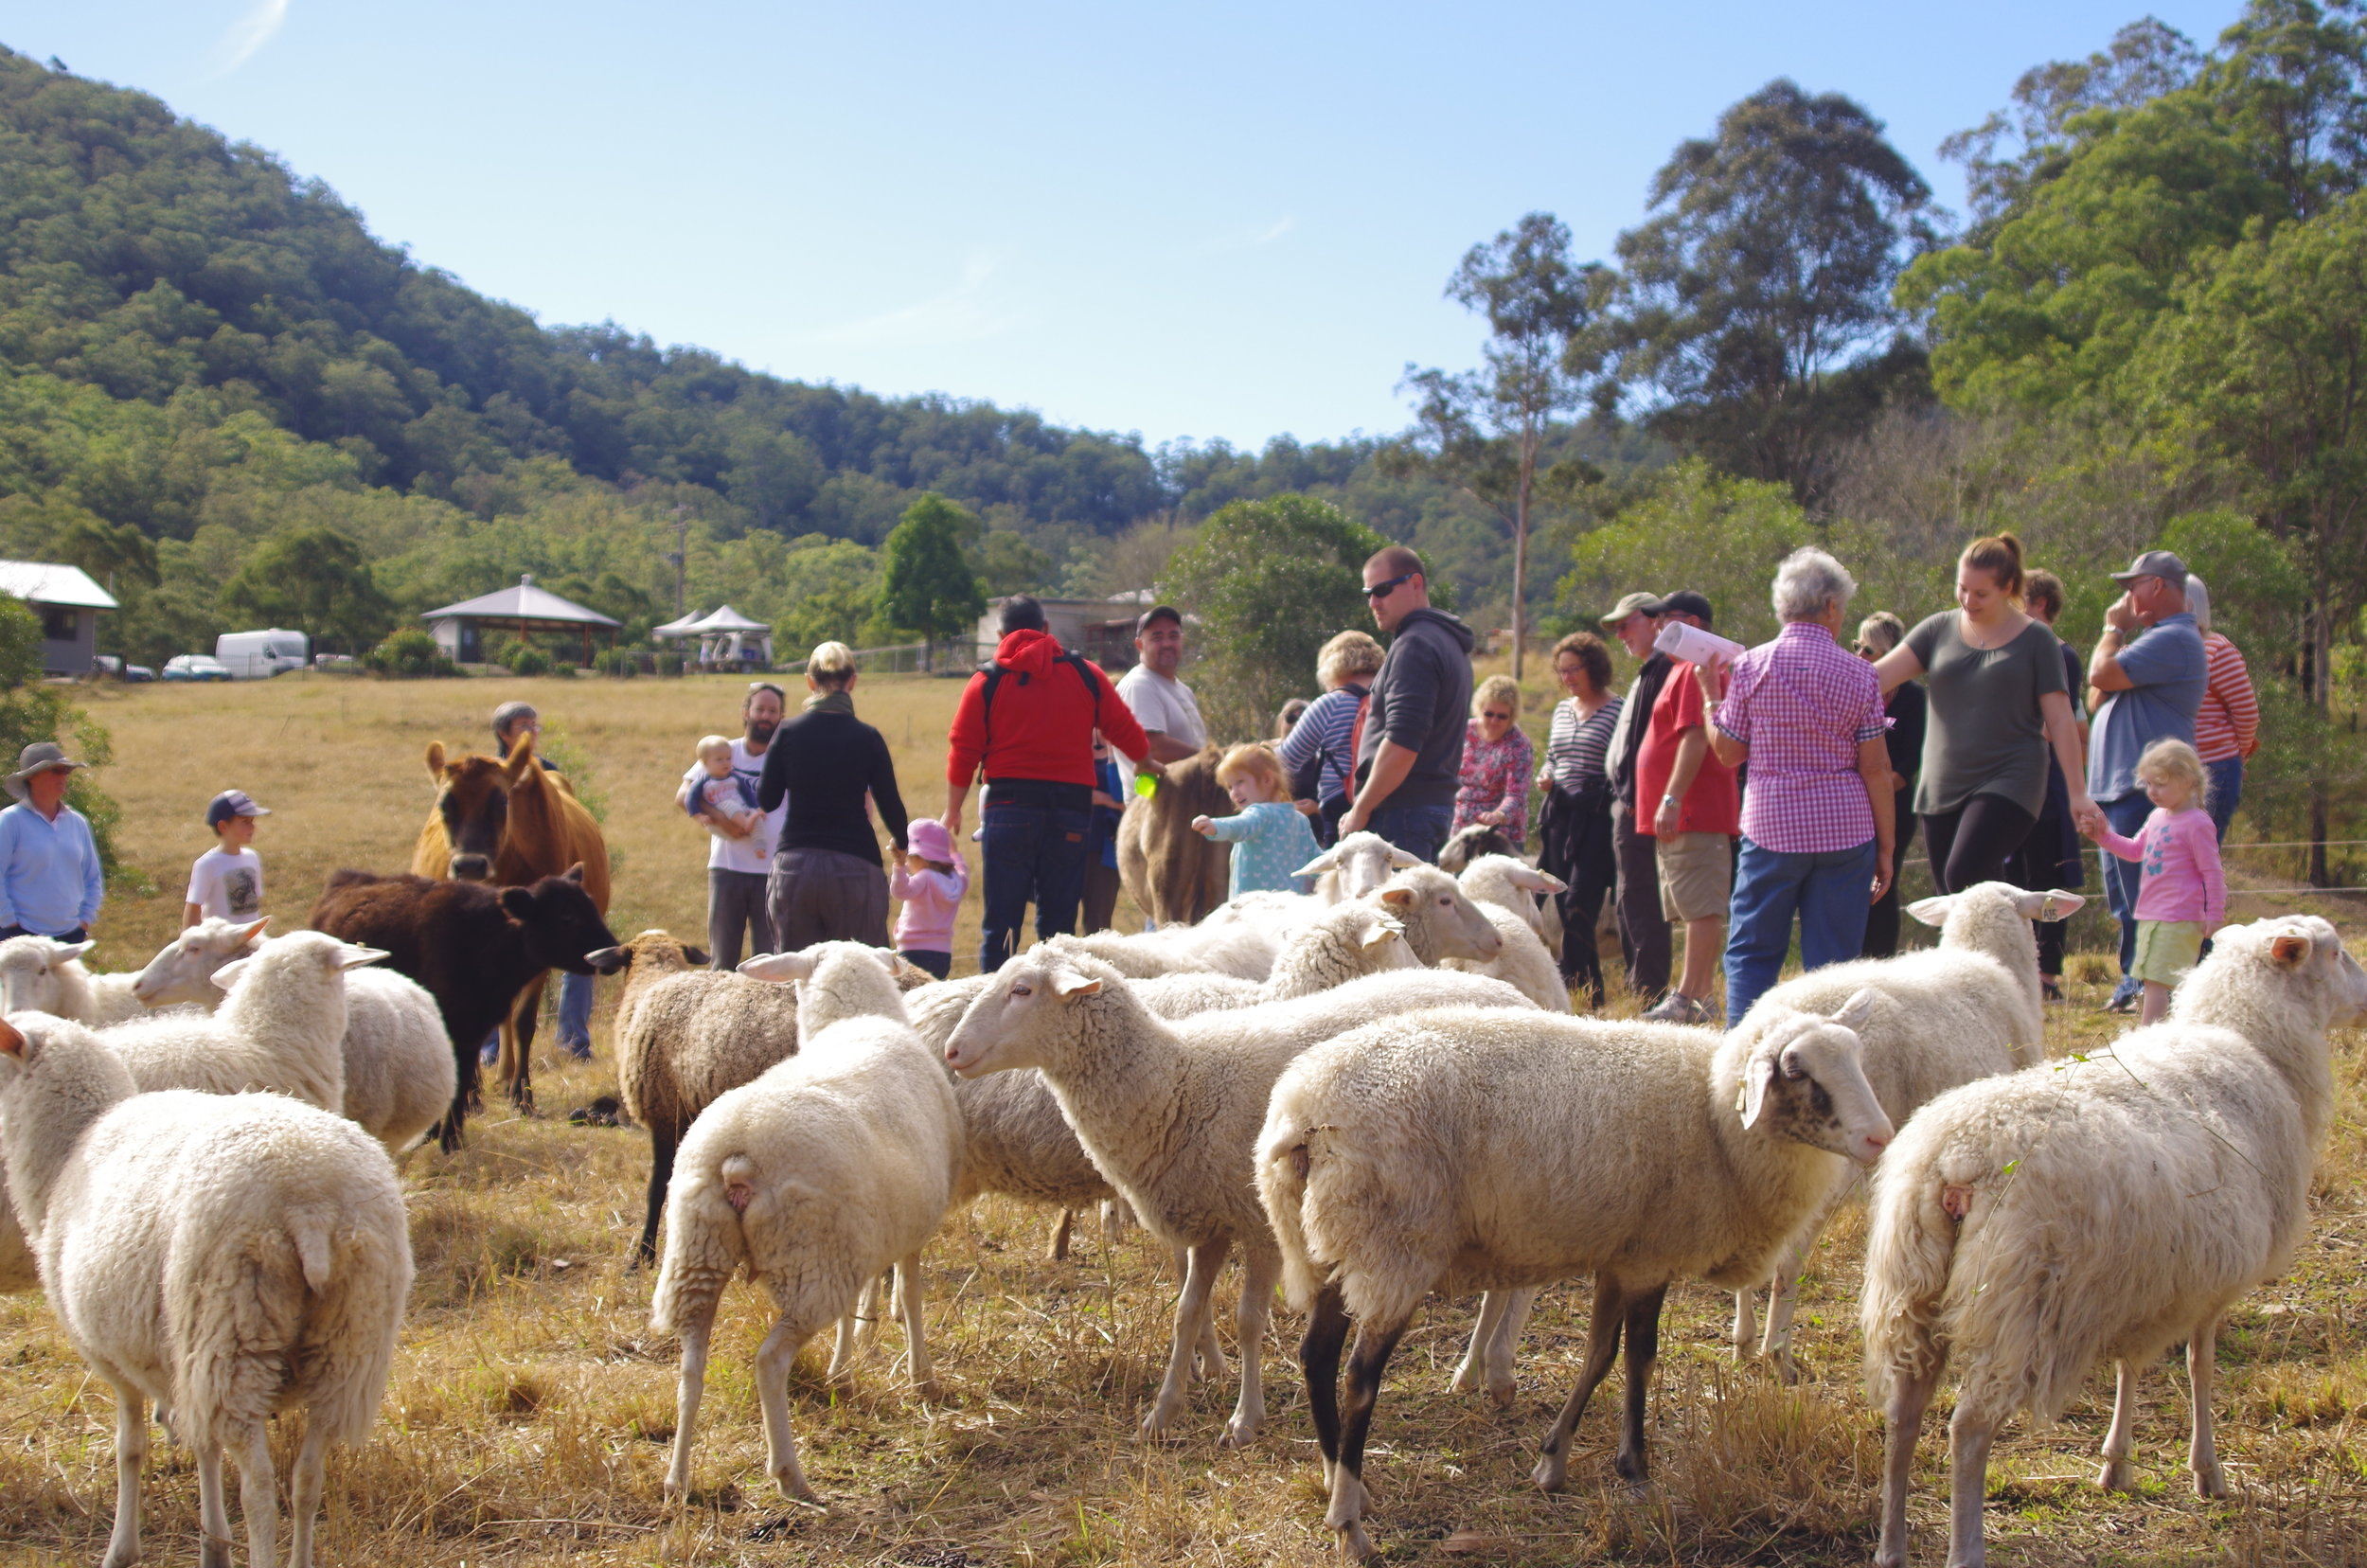 Visit My Farm Australia - Ewetopia, Ellenborough NSW